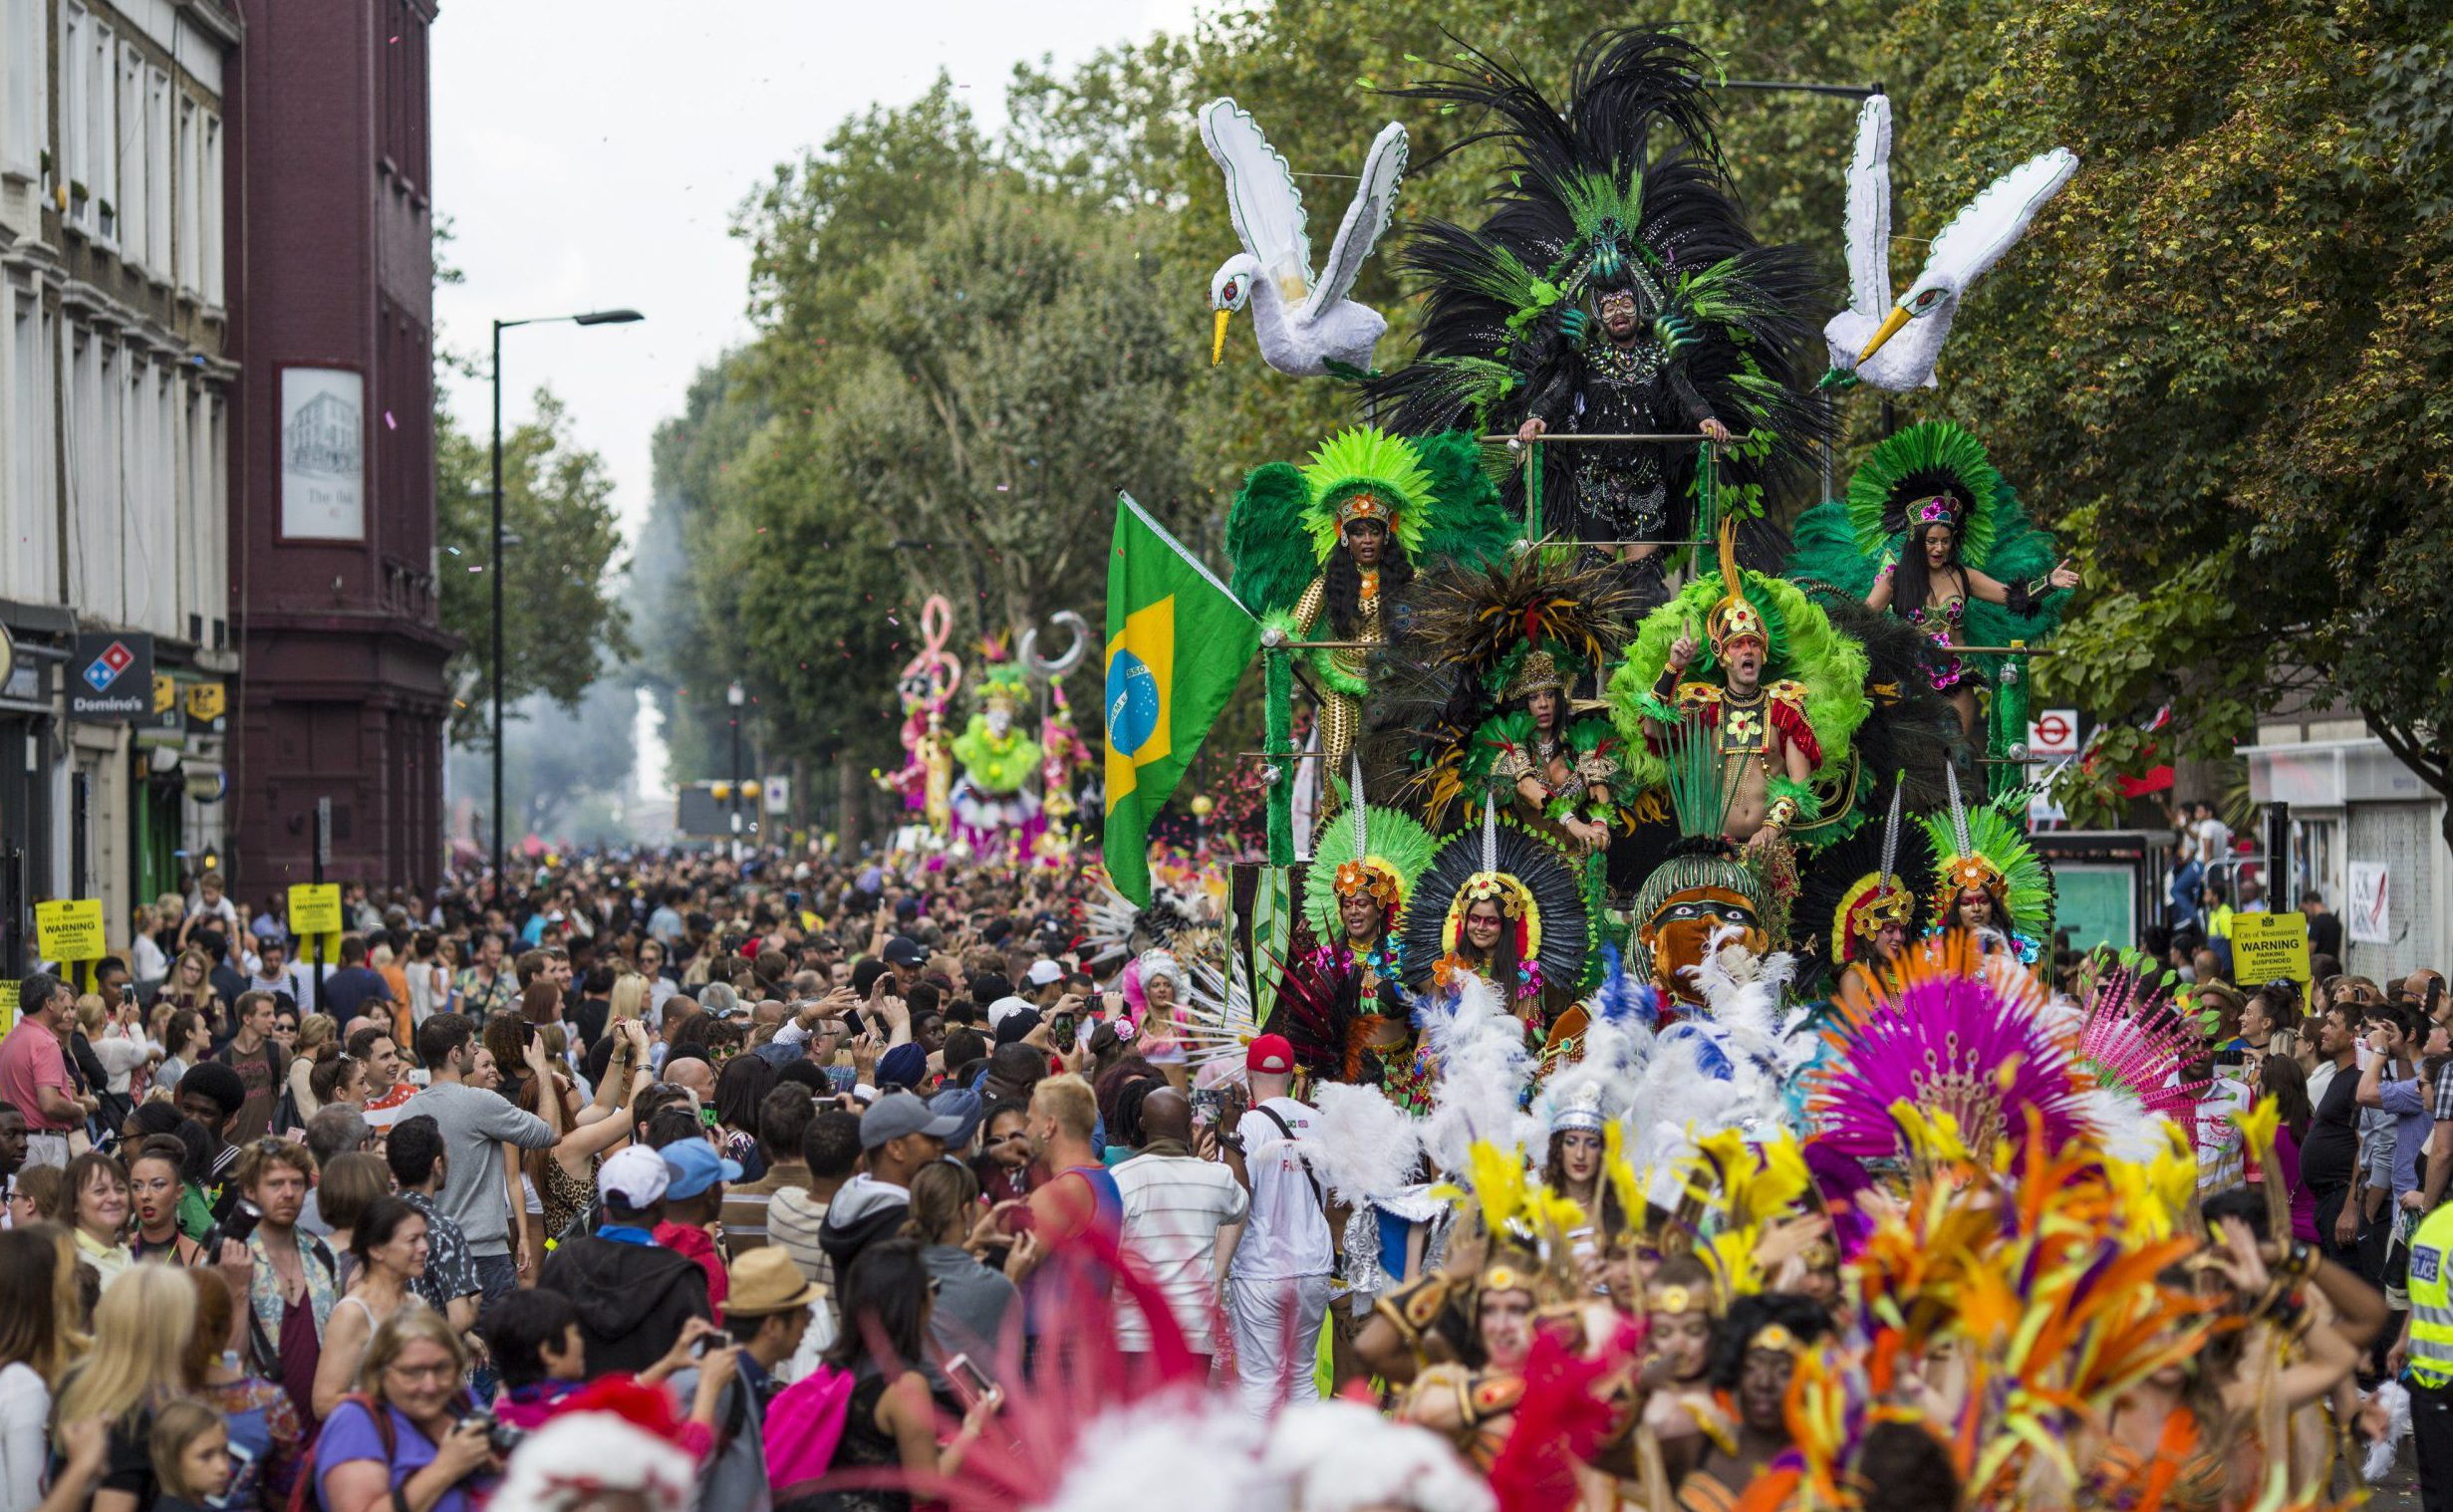 LONDON, ENGLAND - AUGUST 29: Performers on a float take part in the Notting Hill Carnival on August 29, 2016 in London, England. The Notting Hill Carnival, which has taken place annually since 1964, is expected to attract over a million people. The two-day event, started by members of the Afro-Caribbean community, sees costumed performers take to the streets in a parade and dozens of sound systems set up around the Notting Hill streets. (Photo by Jack Taylor/Getty Images)